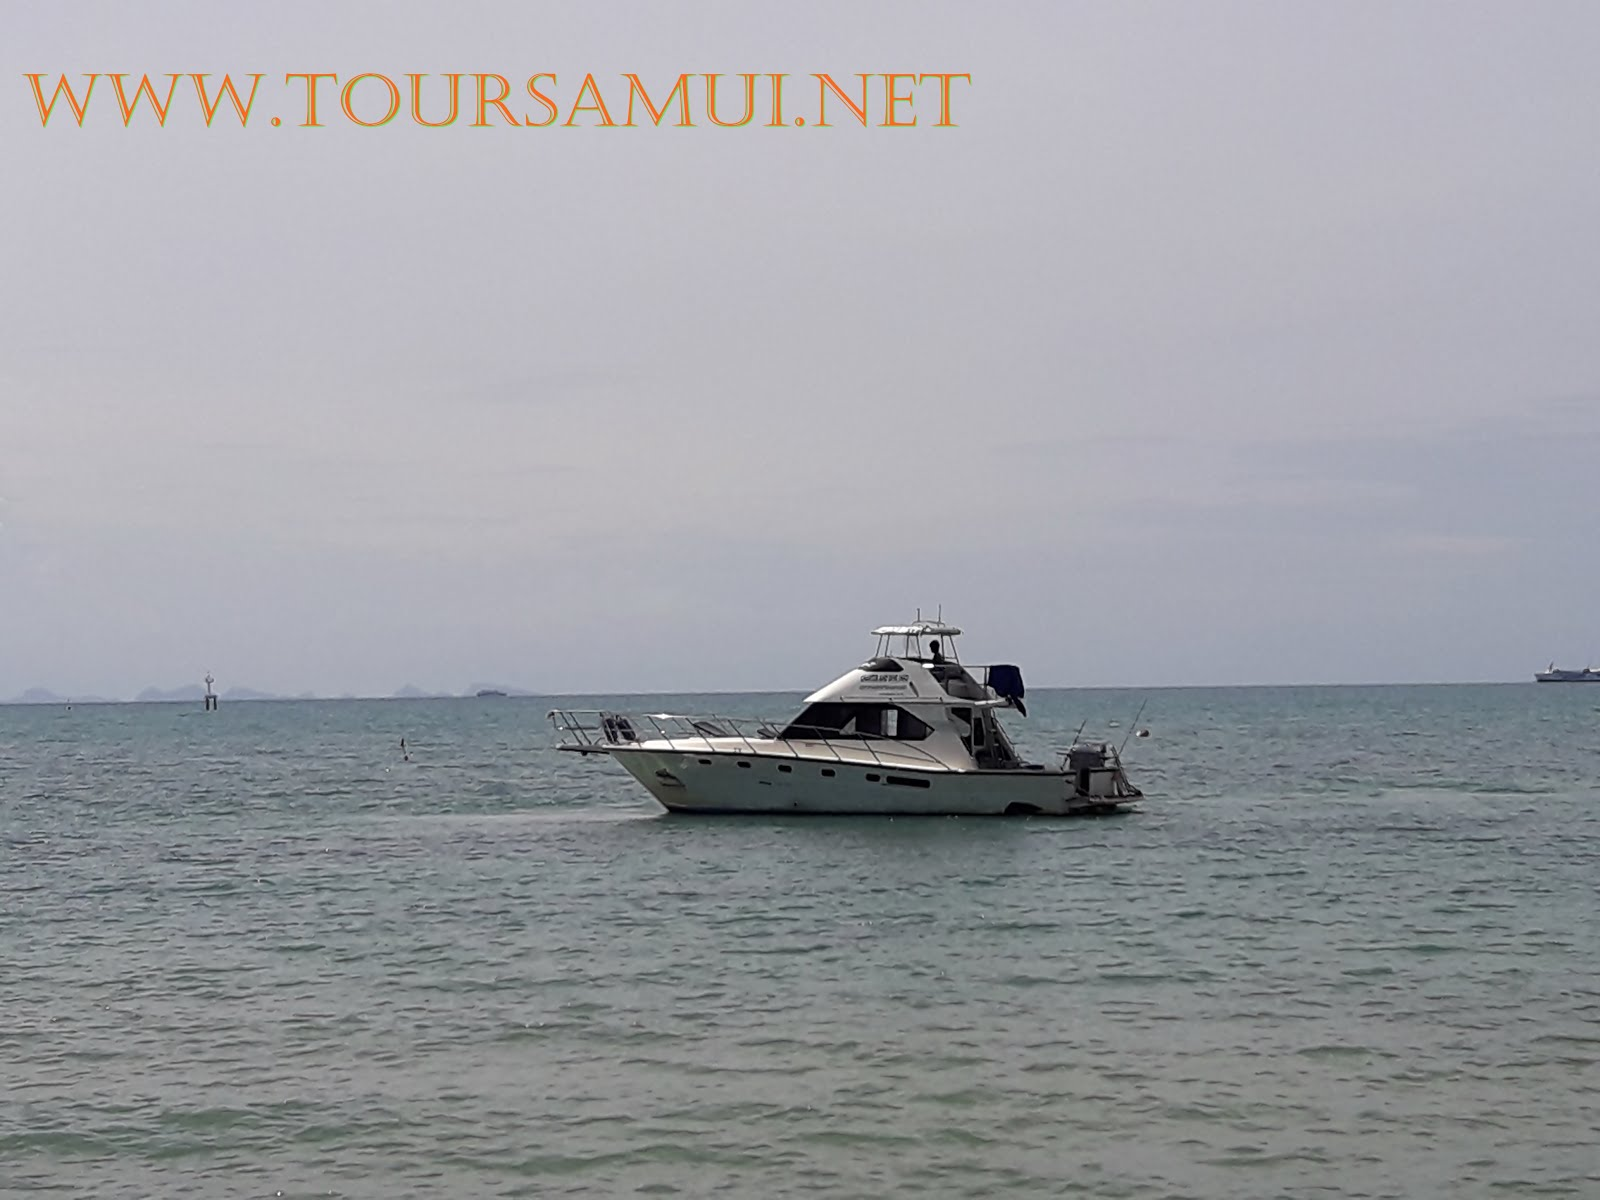 TOUR KOH SAMUI BY BOAT